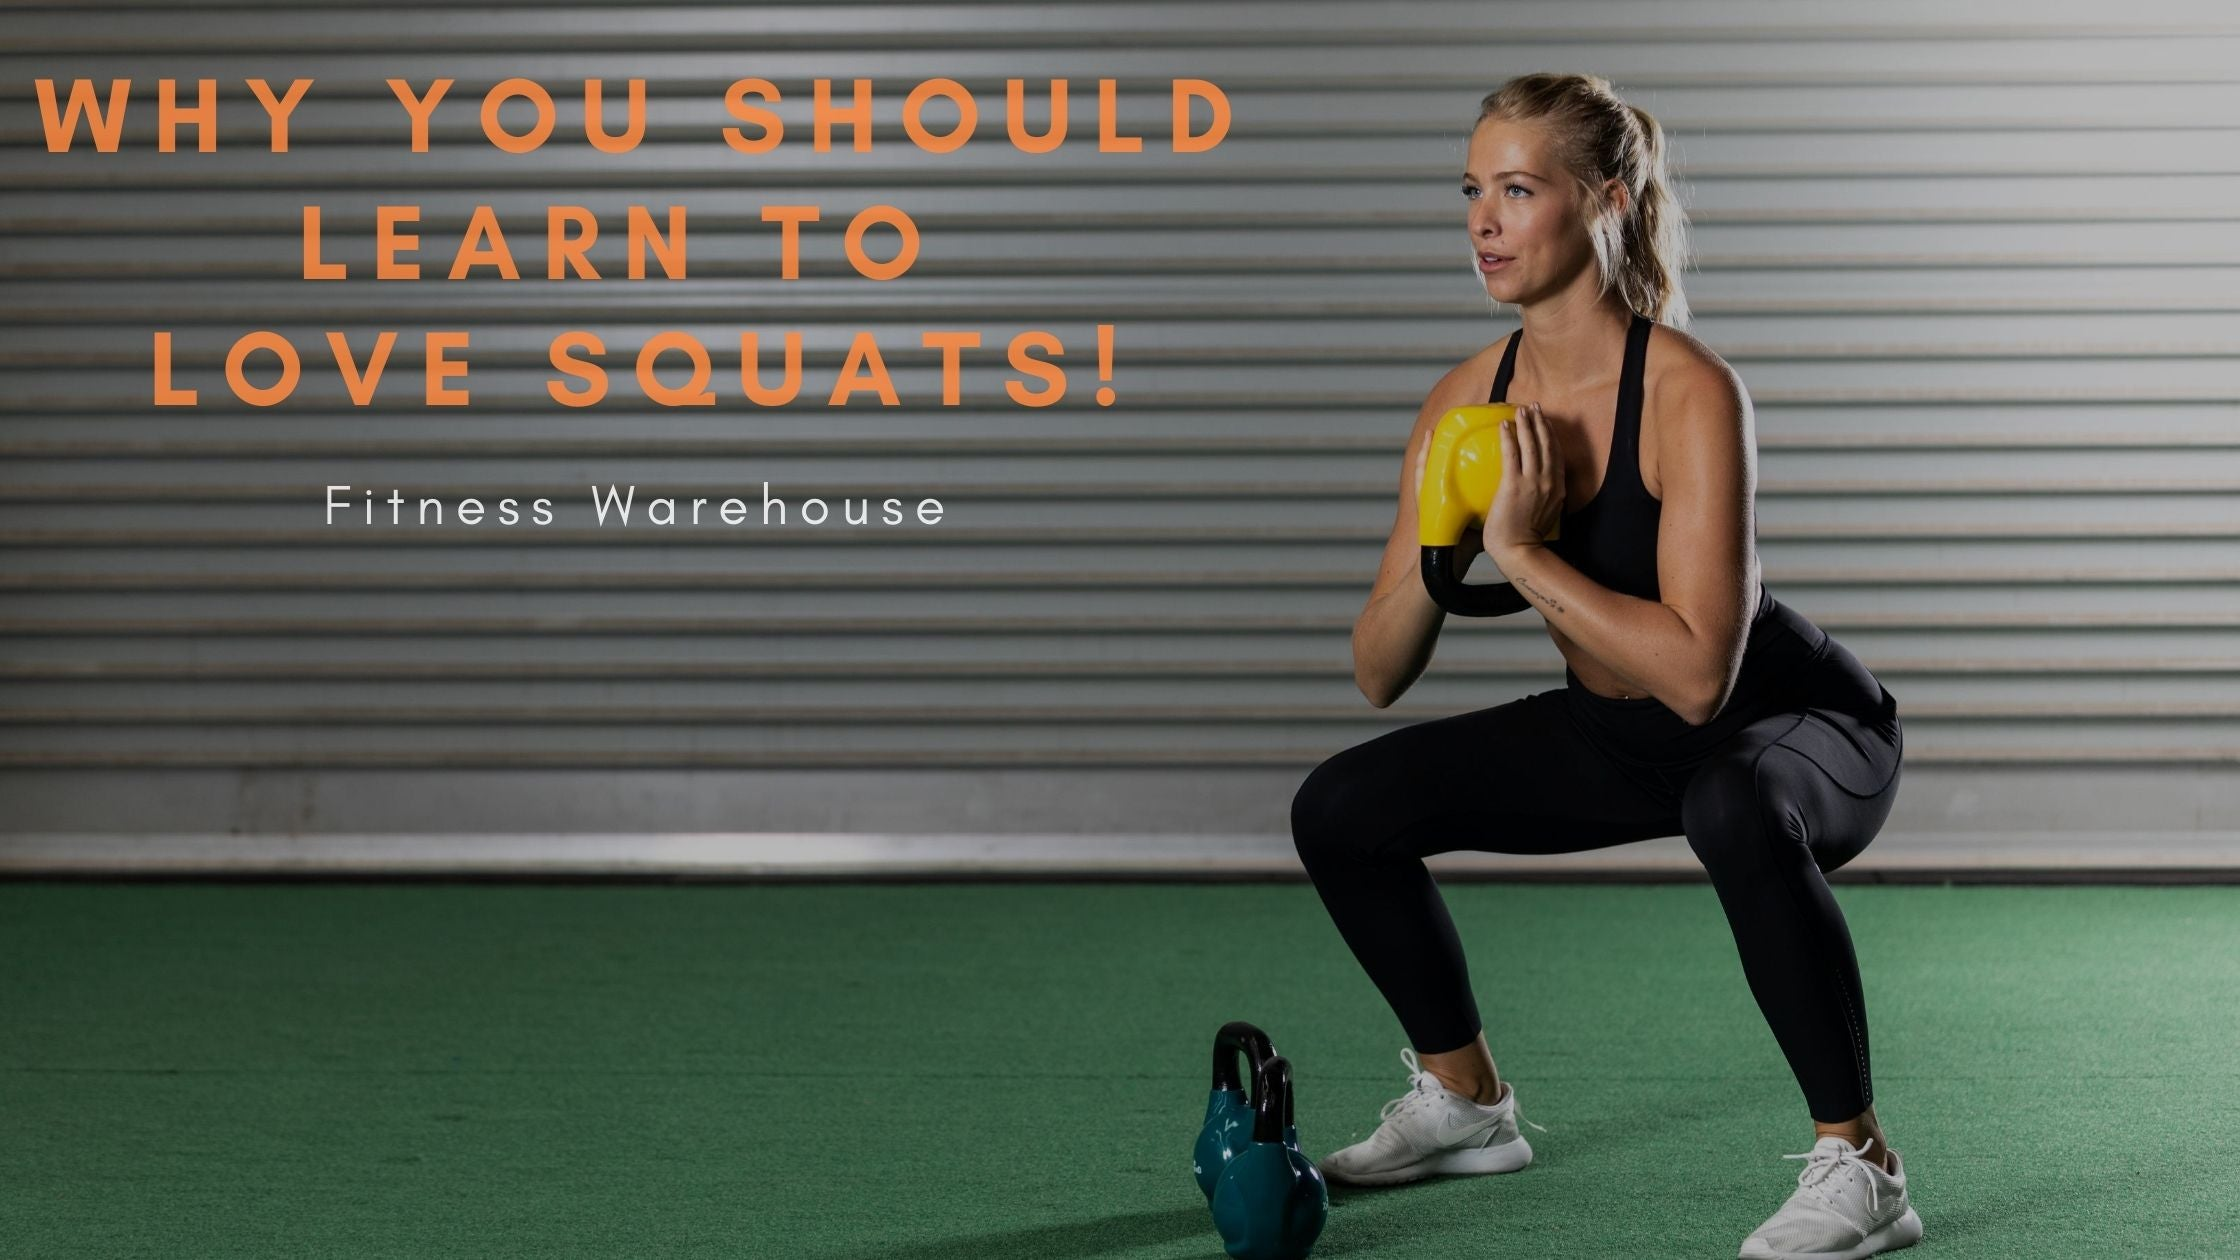 Hate squats? Why you should learn to love them!